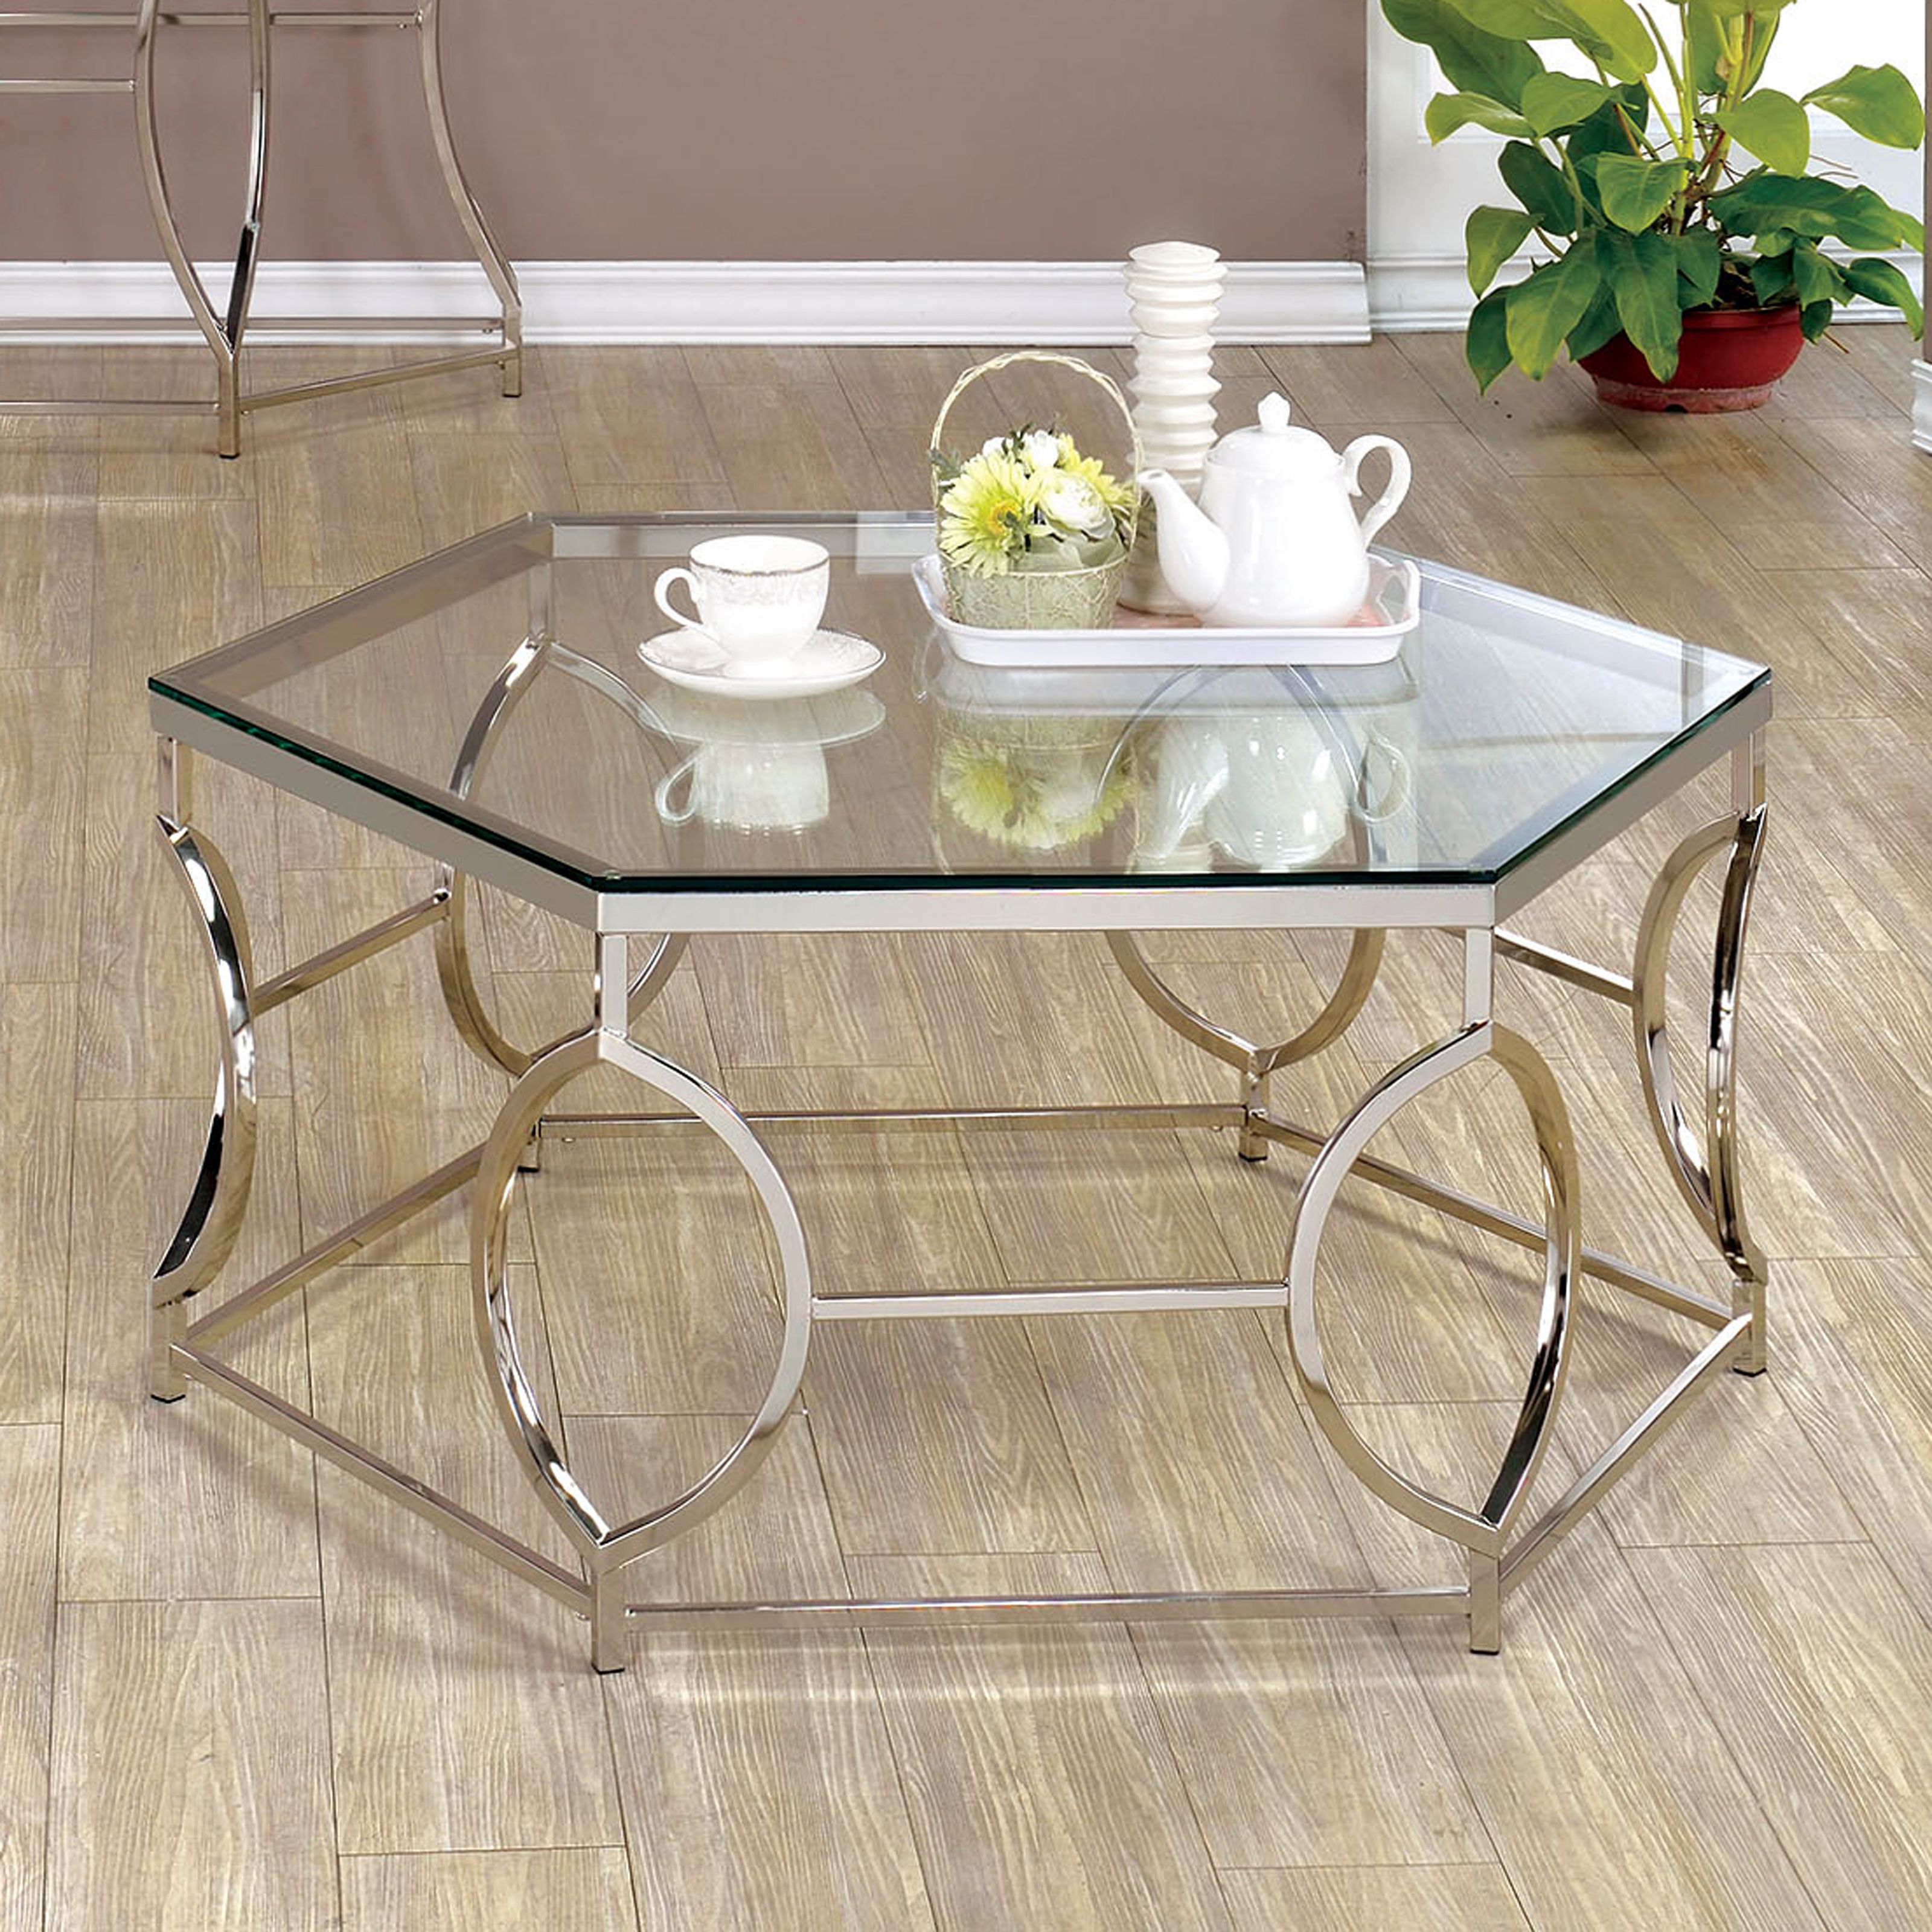 Furniture Of America Remus Hexagonal Coffee Table, Chrome